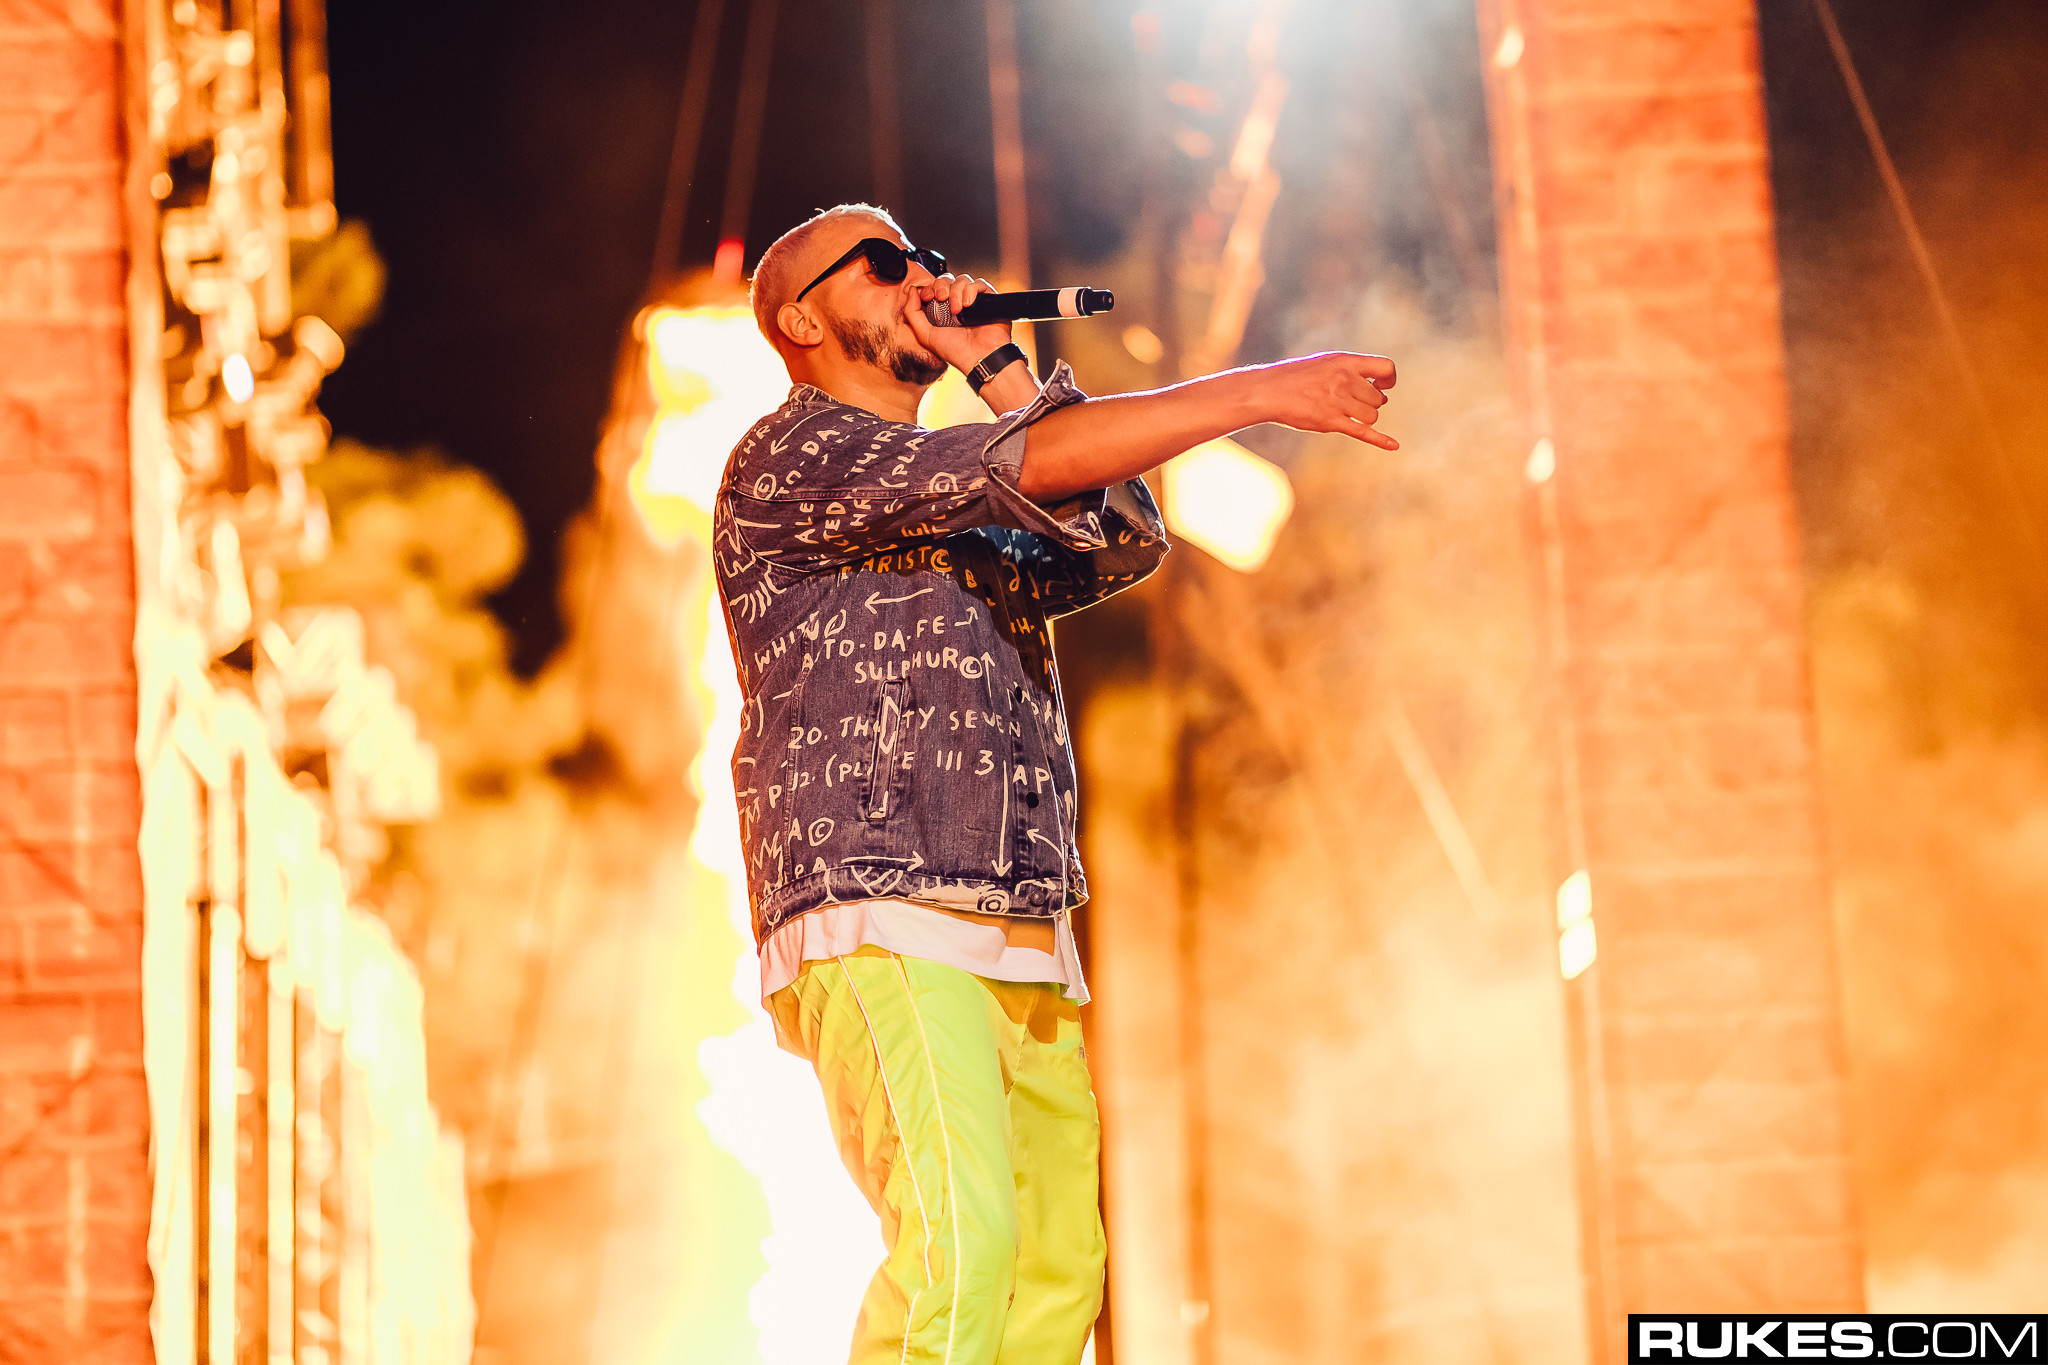 DJ Snake Teases New Collab With J Balvin & Tyga Out This Friday